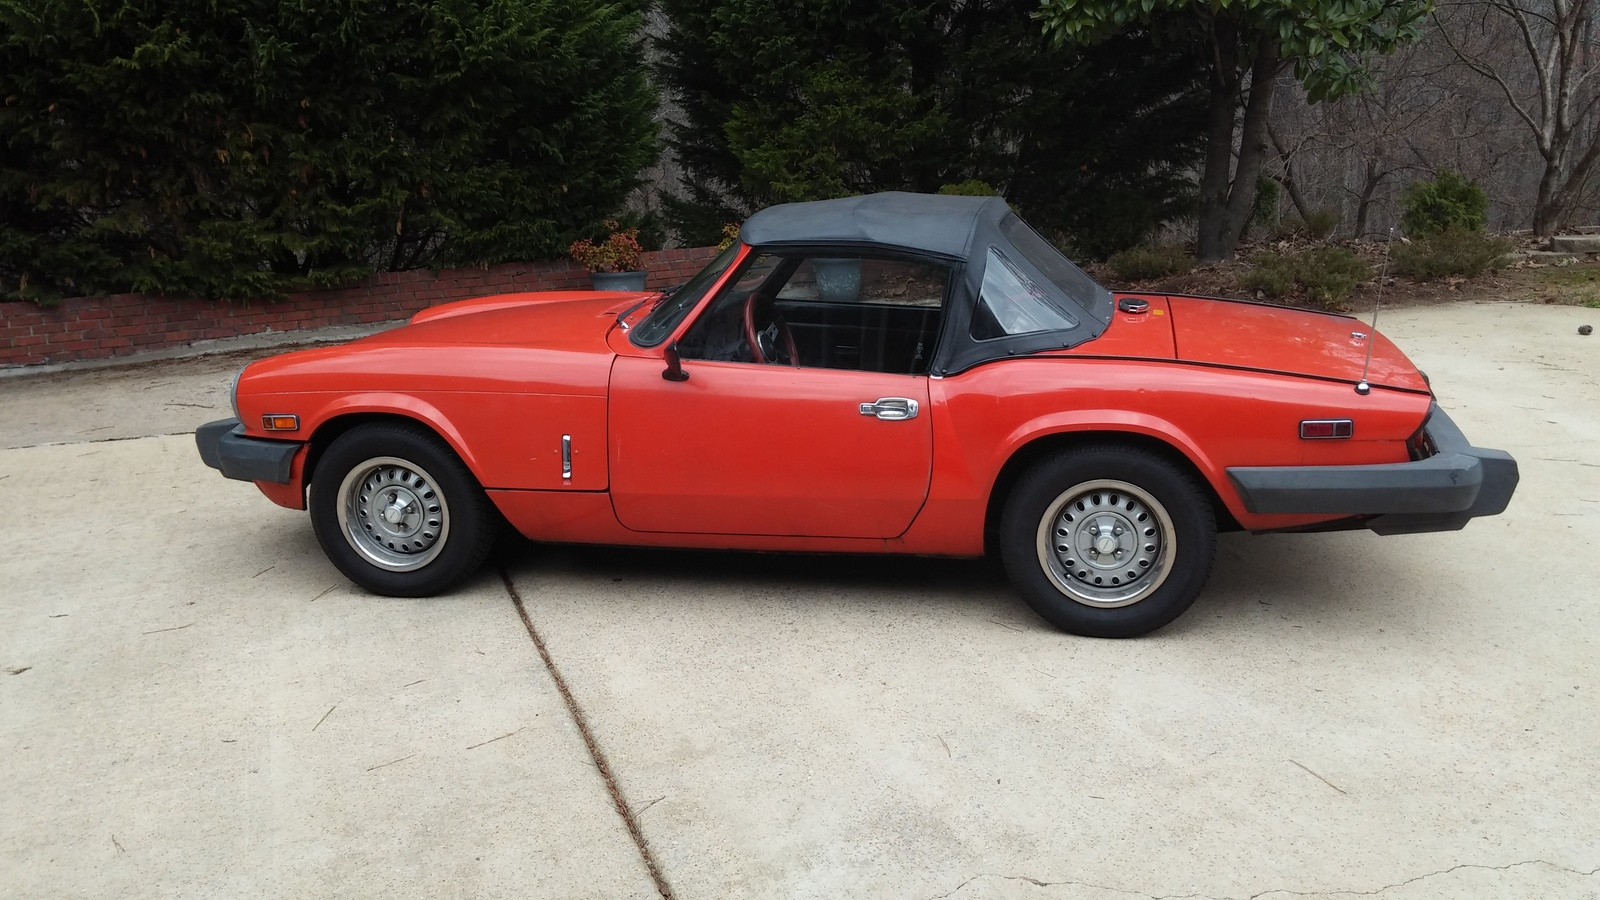 1979 Triumph Spitfire further Lead Acid Battery Charger Circuit Diagram moreover Traffic Light Circuit Diagram further 1967 Chevelle Paint Colors moreover 1985 Dodge Ram Crew Cab. on 1972 dodge charger starter wiring